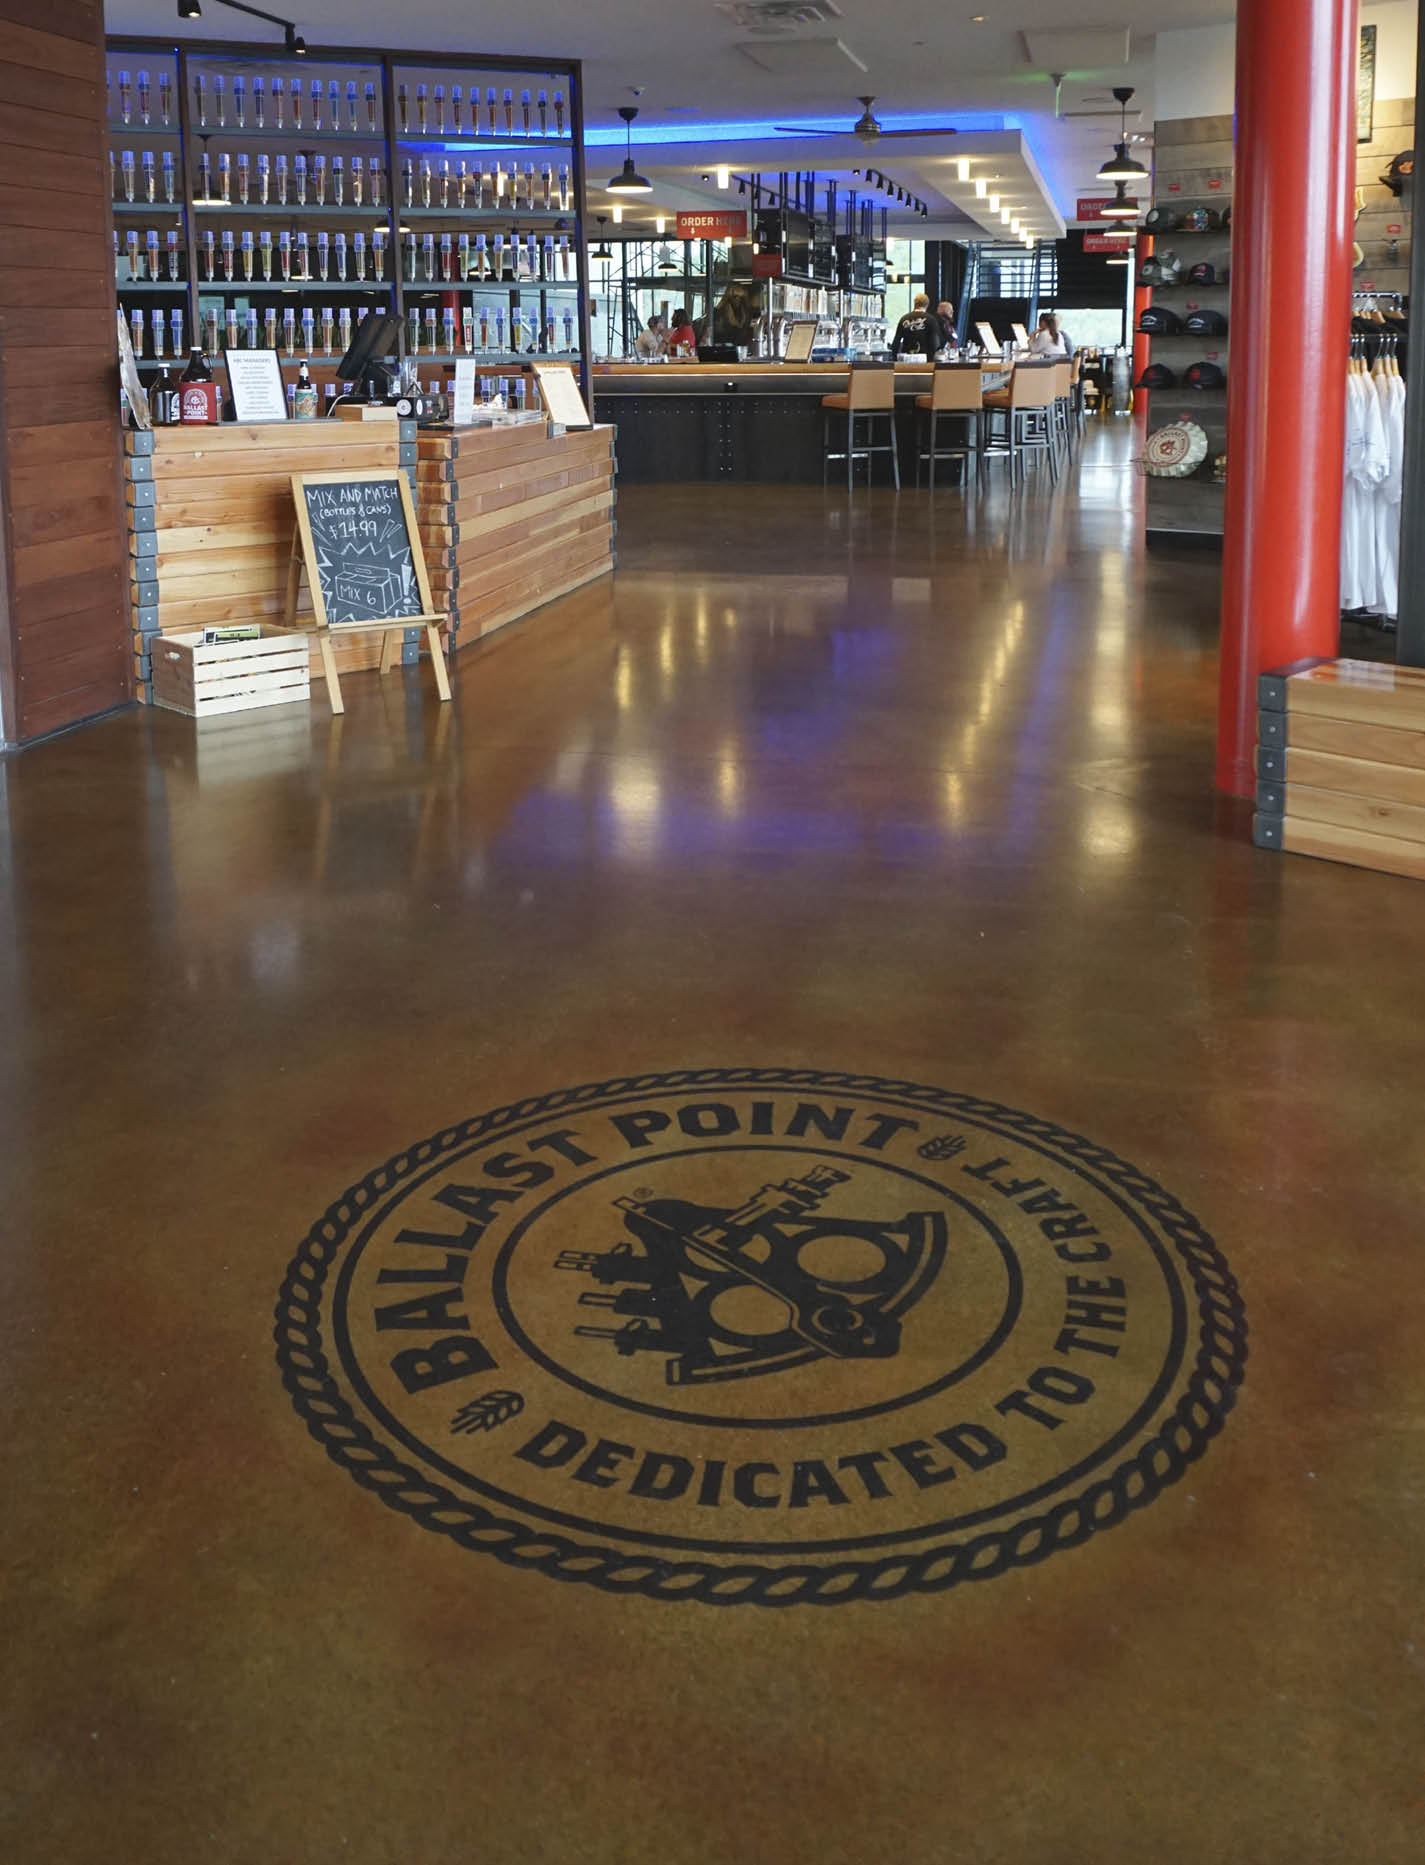 A urethane coating on this brew pub floor ensures durability,  despite the likelihood of heavy carts and hot water being used on it.  Its good looks and the ability to include the company's logo are bonuses. Photo courtesy of Increte